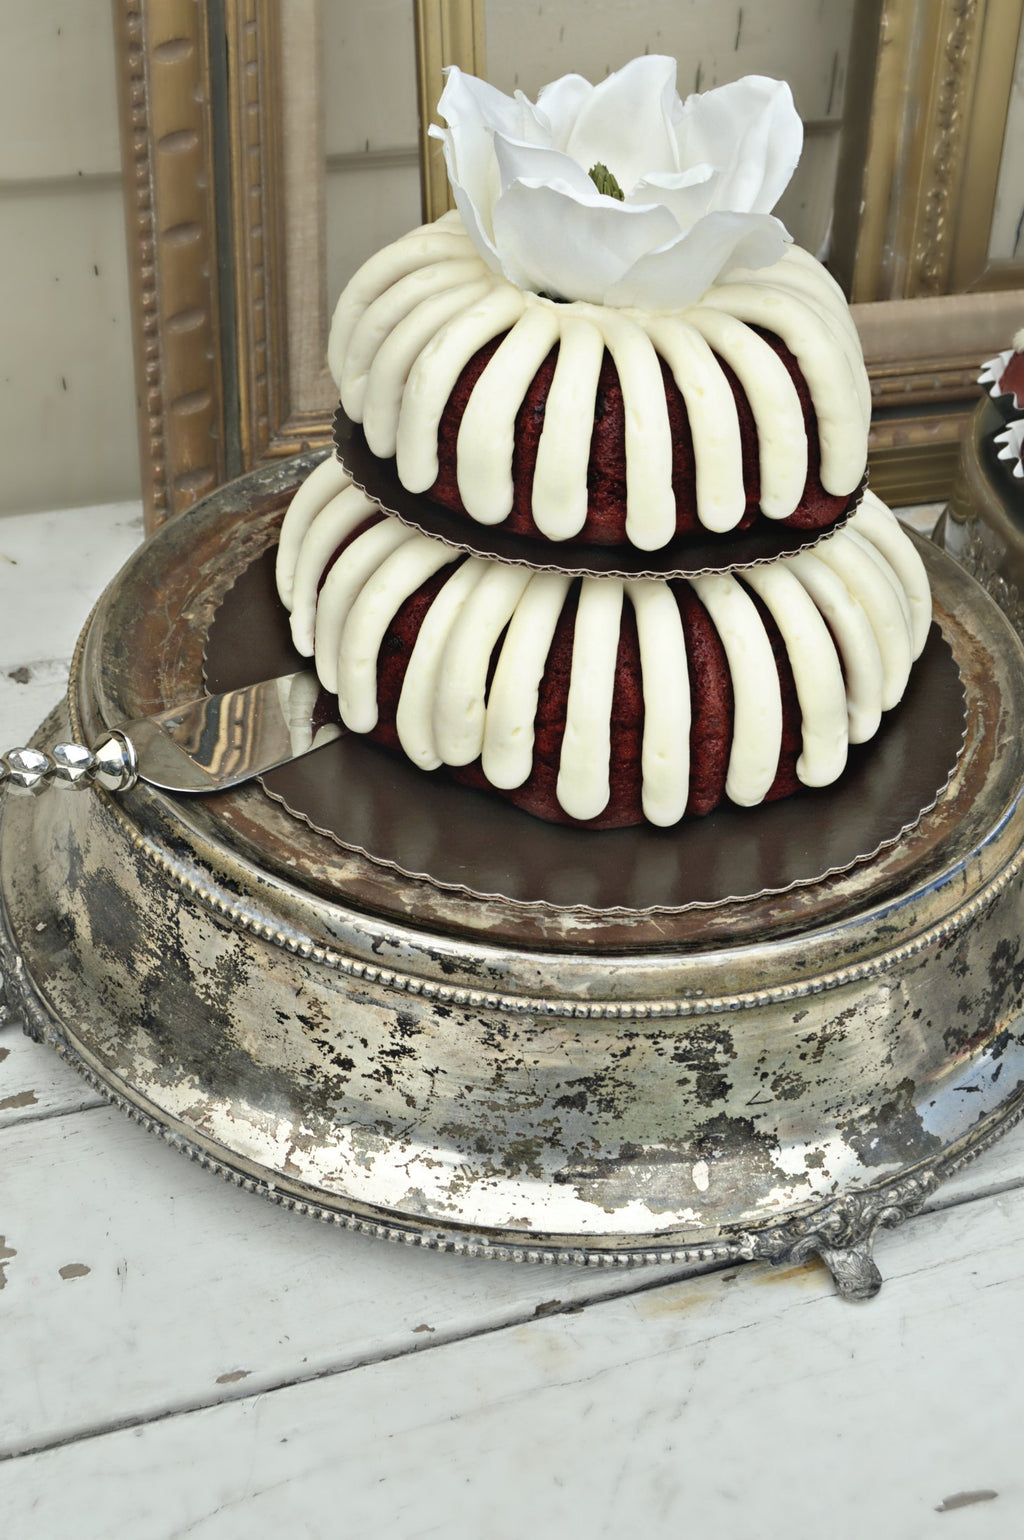 Vintage silver cake stand with bundt cake